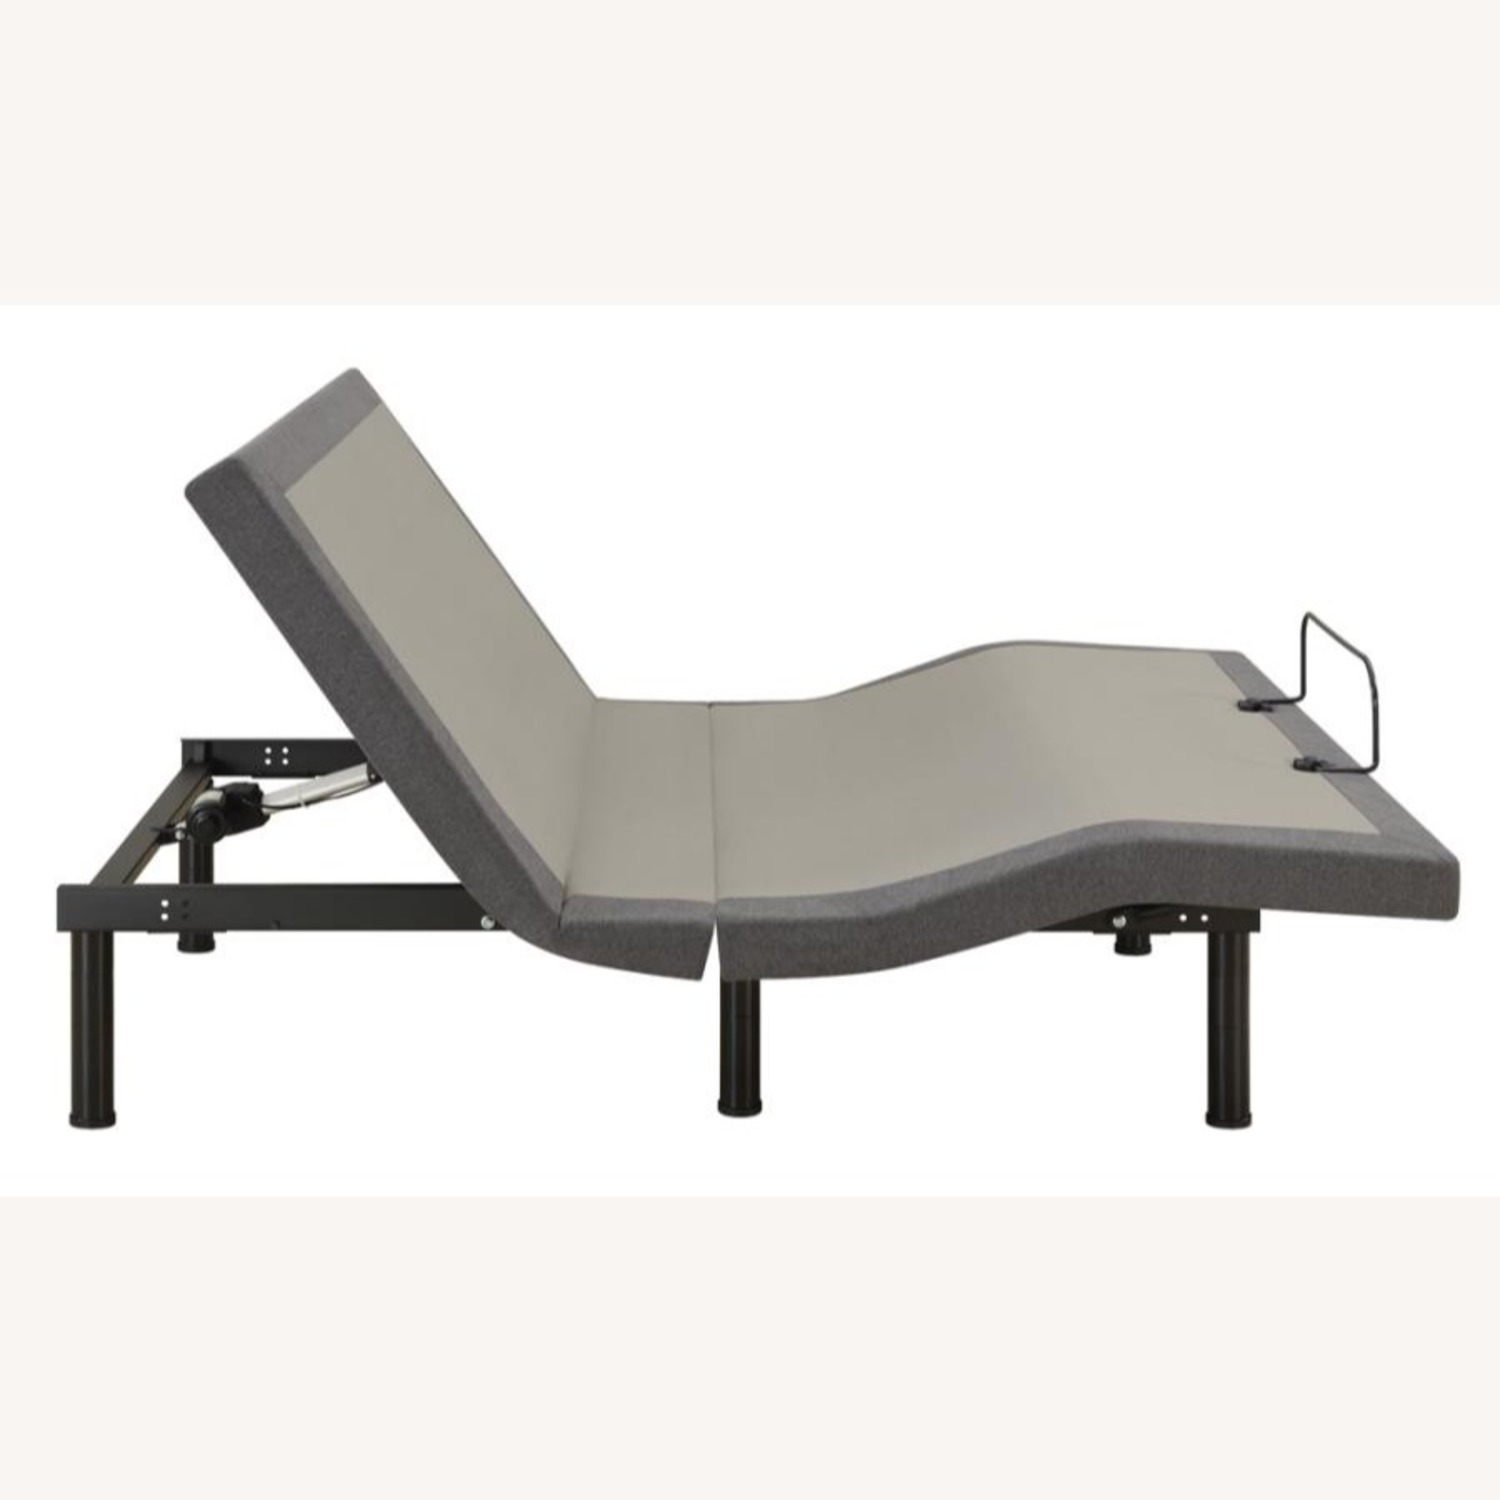 Queen Adjustable Bed Base In Grey Fabric Finish - image-6